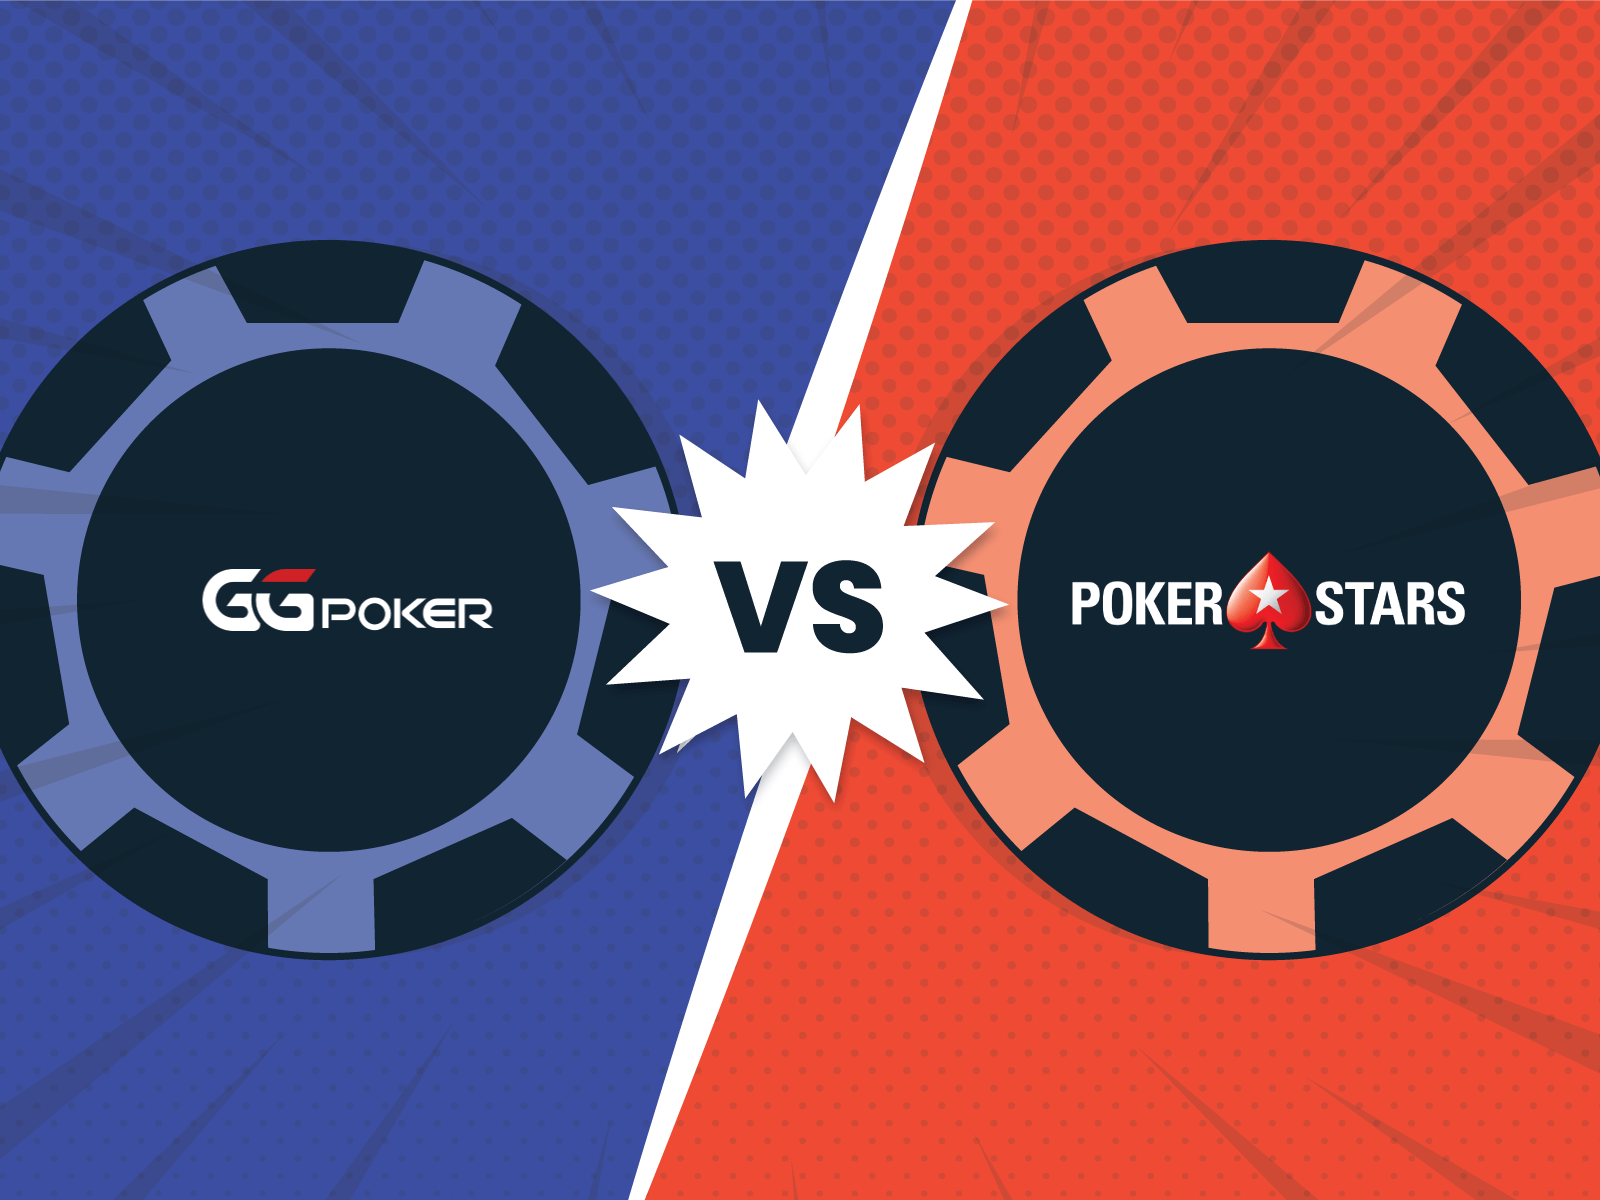 PokerStars vs GGPoker – Which Is Better?